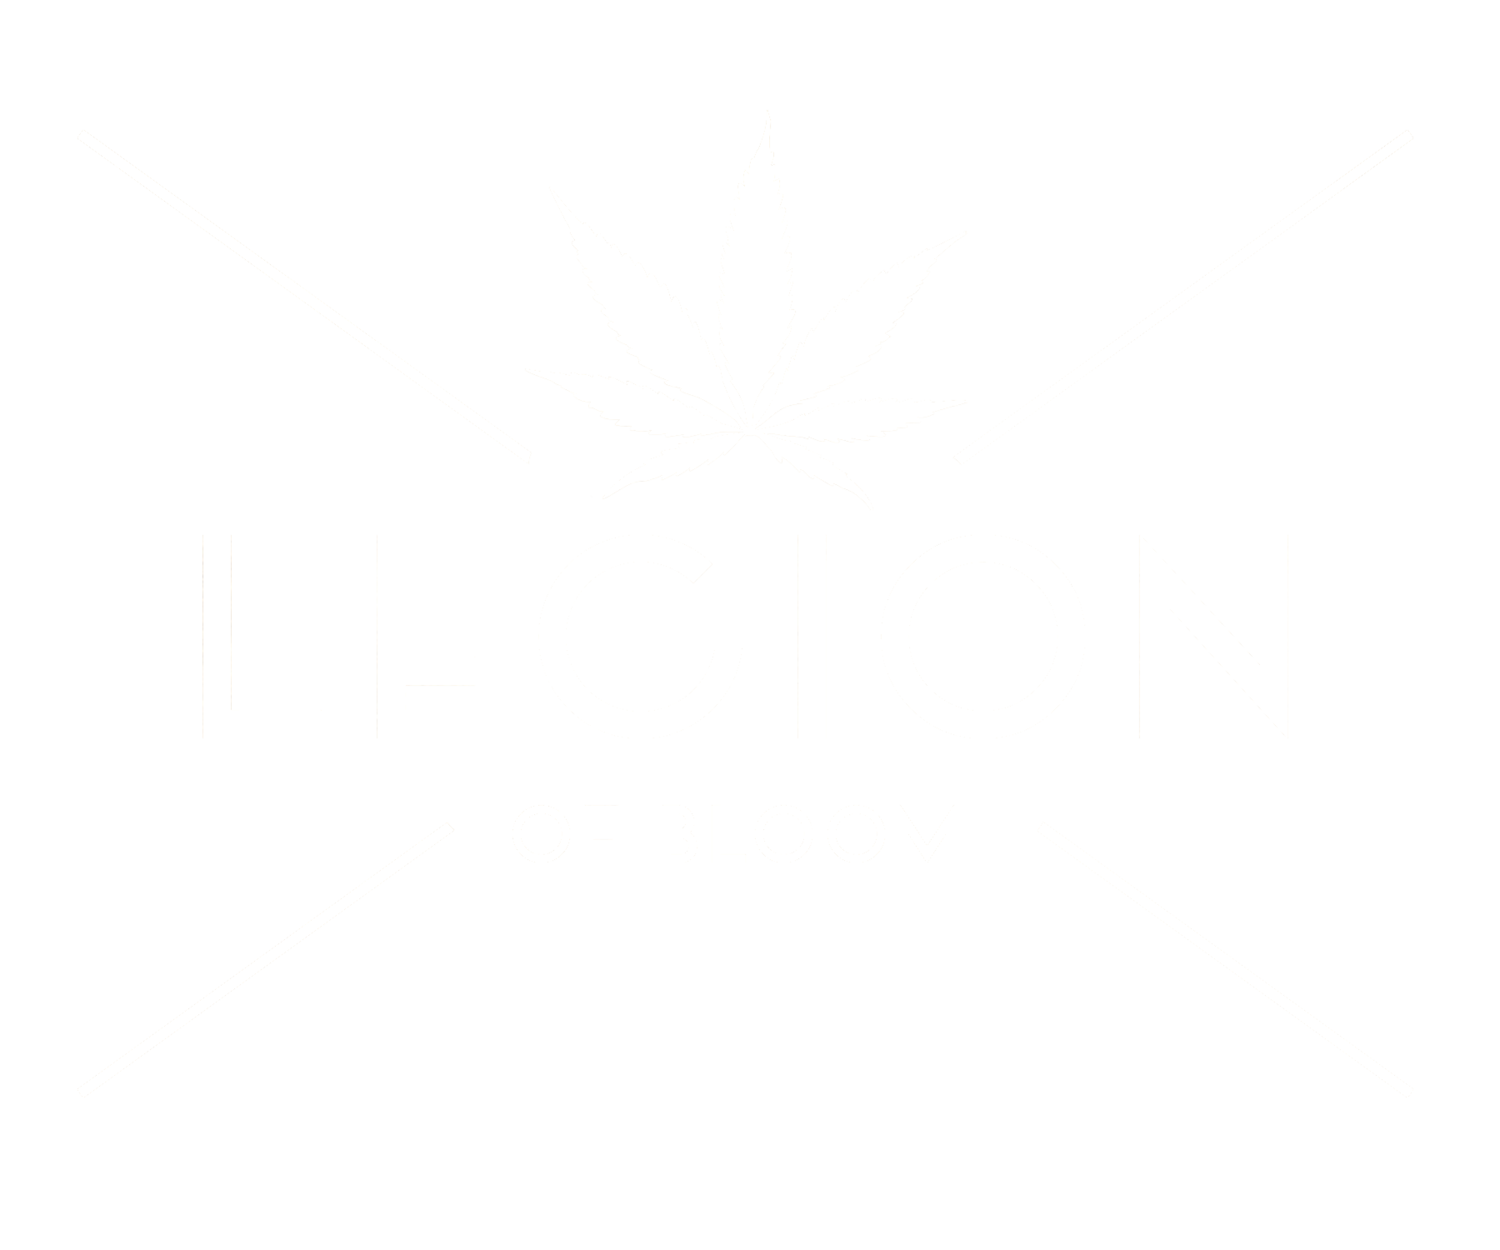 Old photo effect png. The legion of bloom